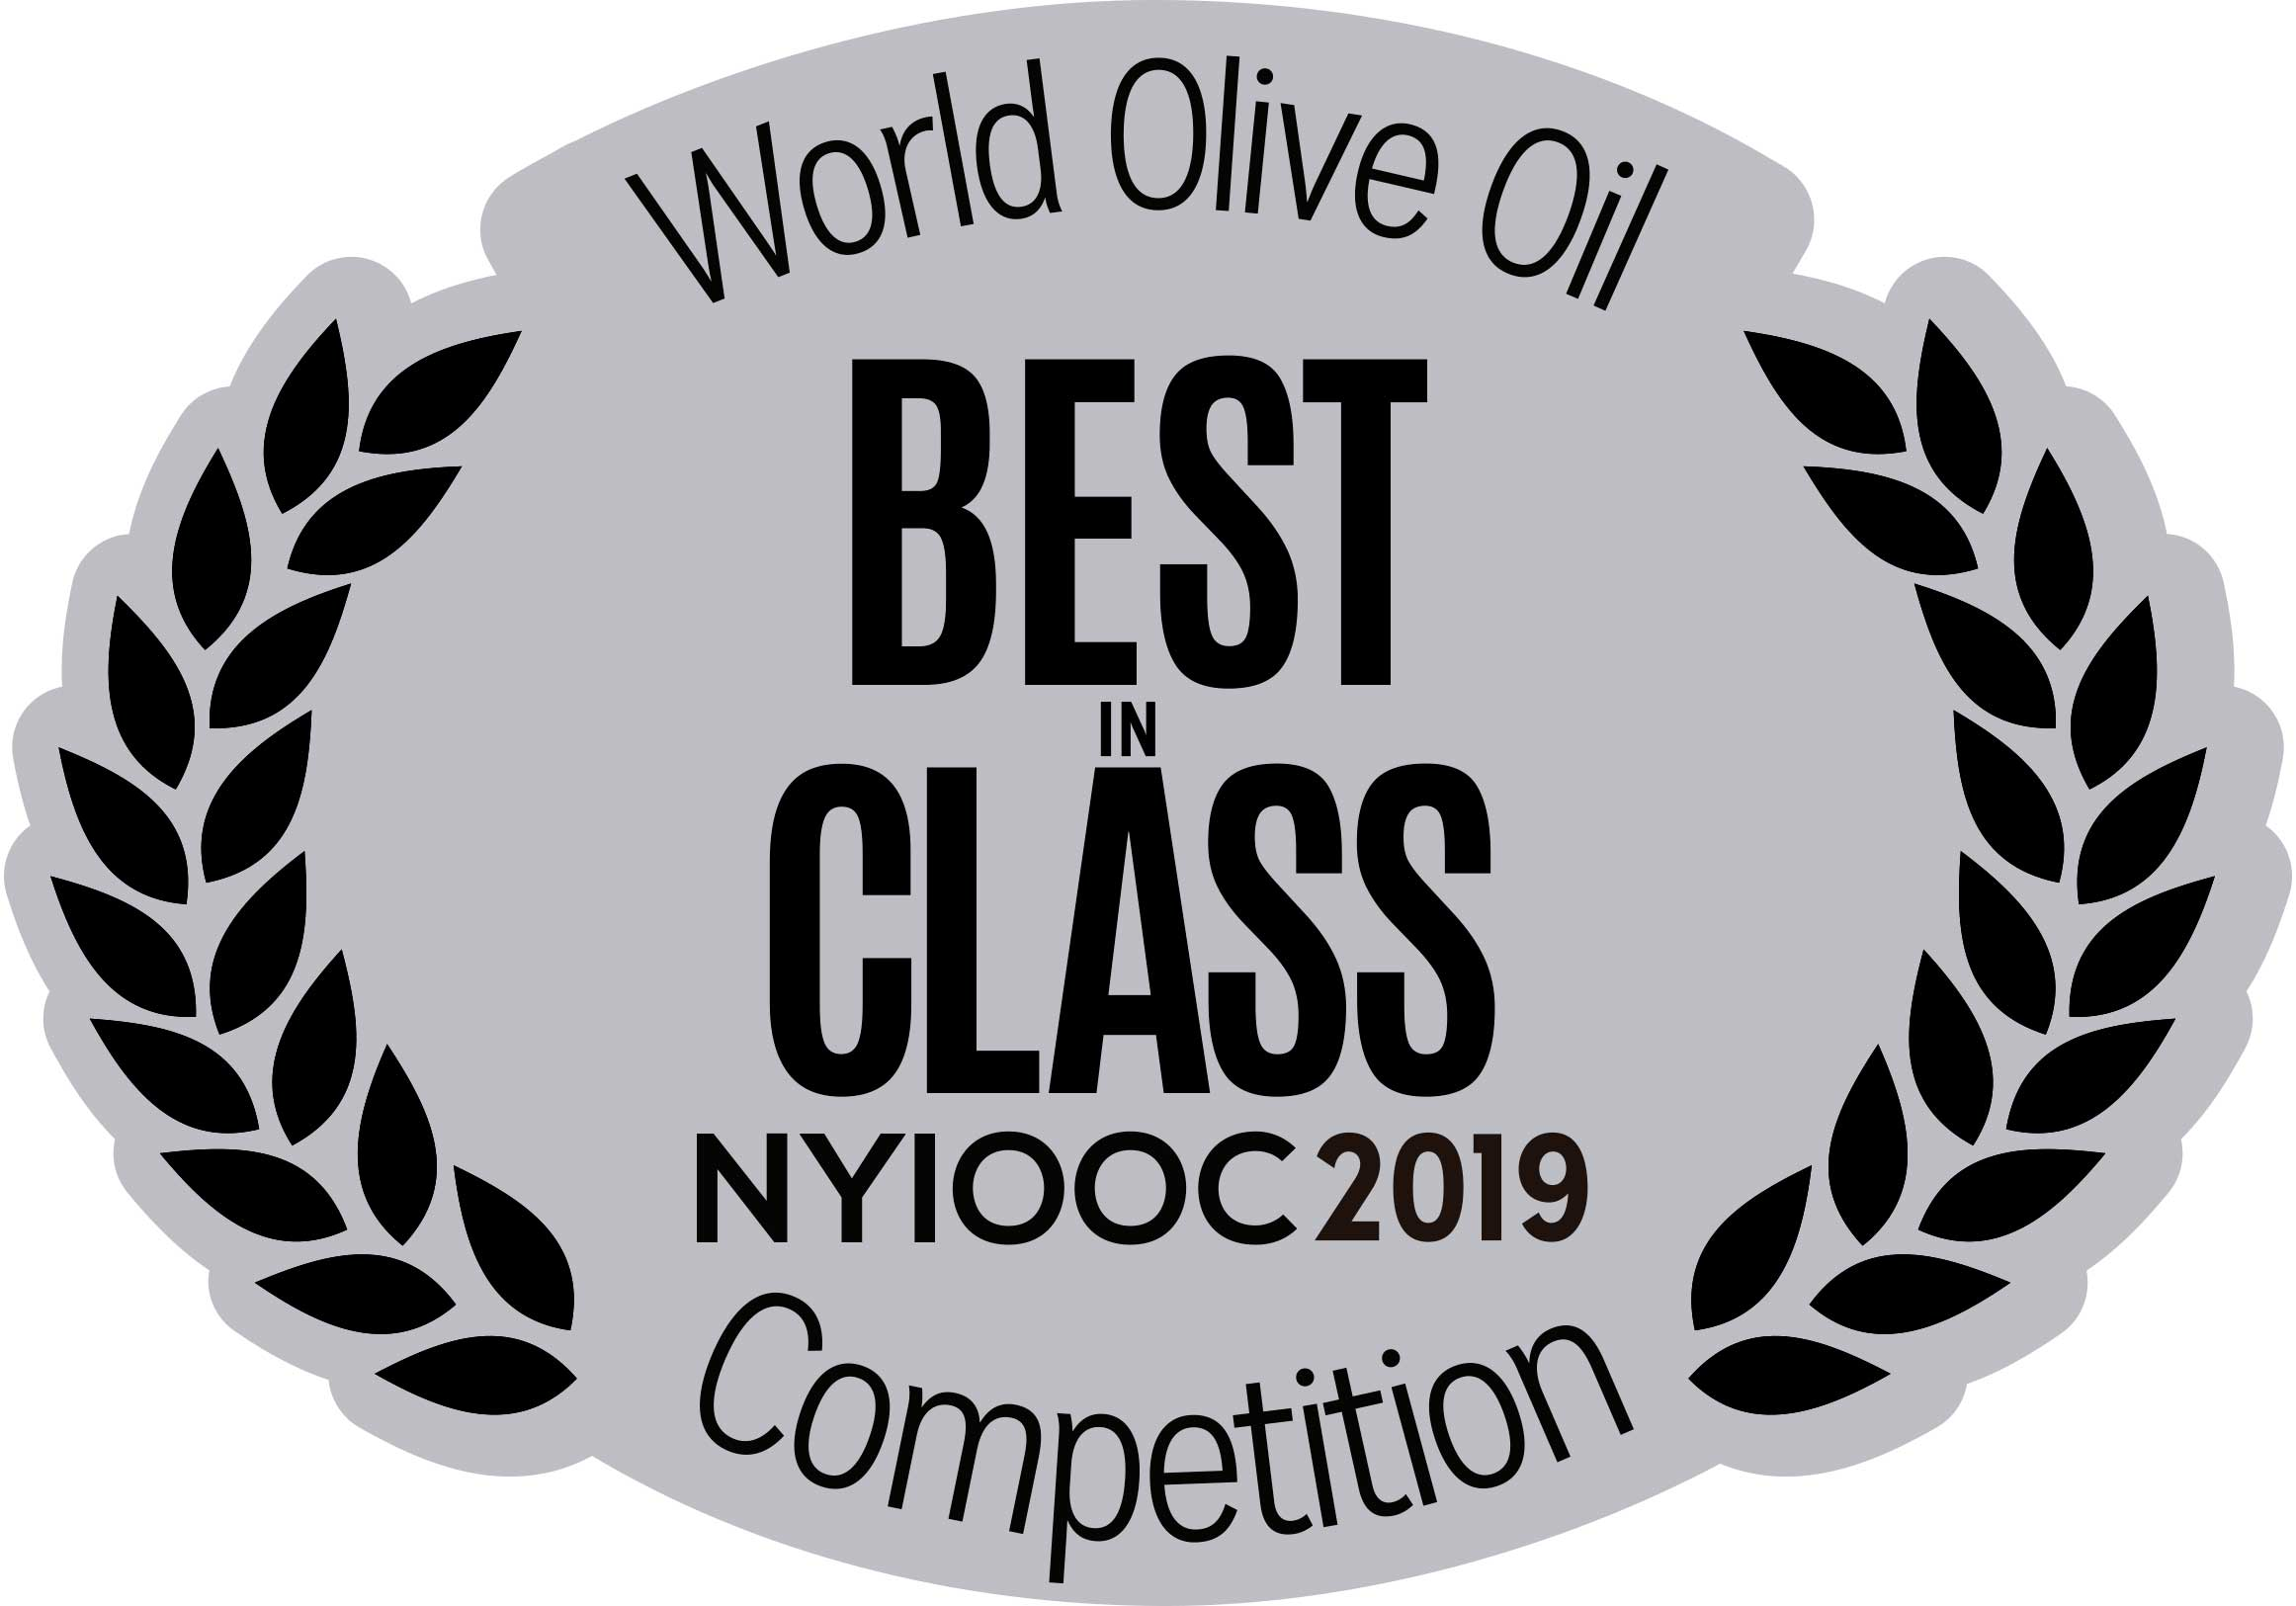 NYOOC – Rated the best in its category. Master Miller